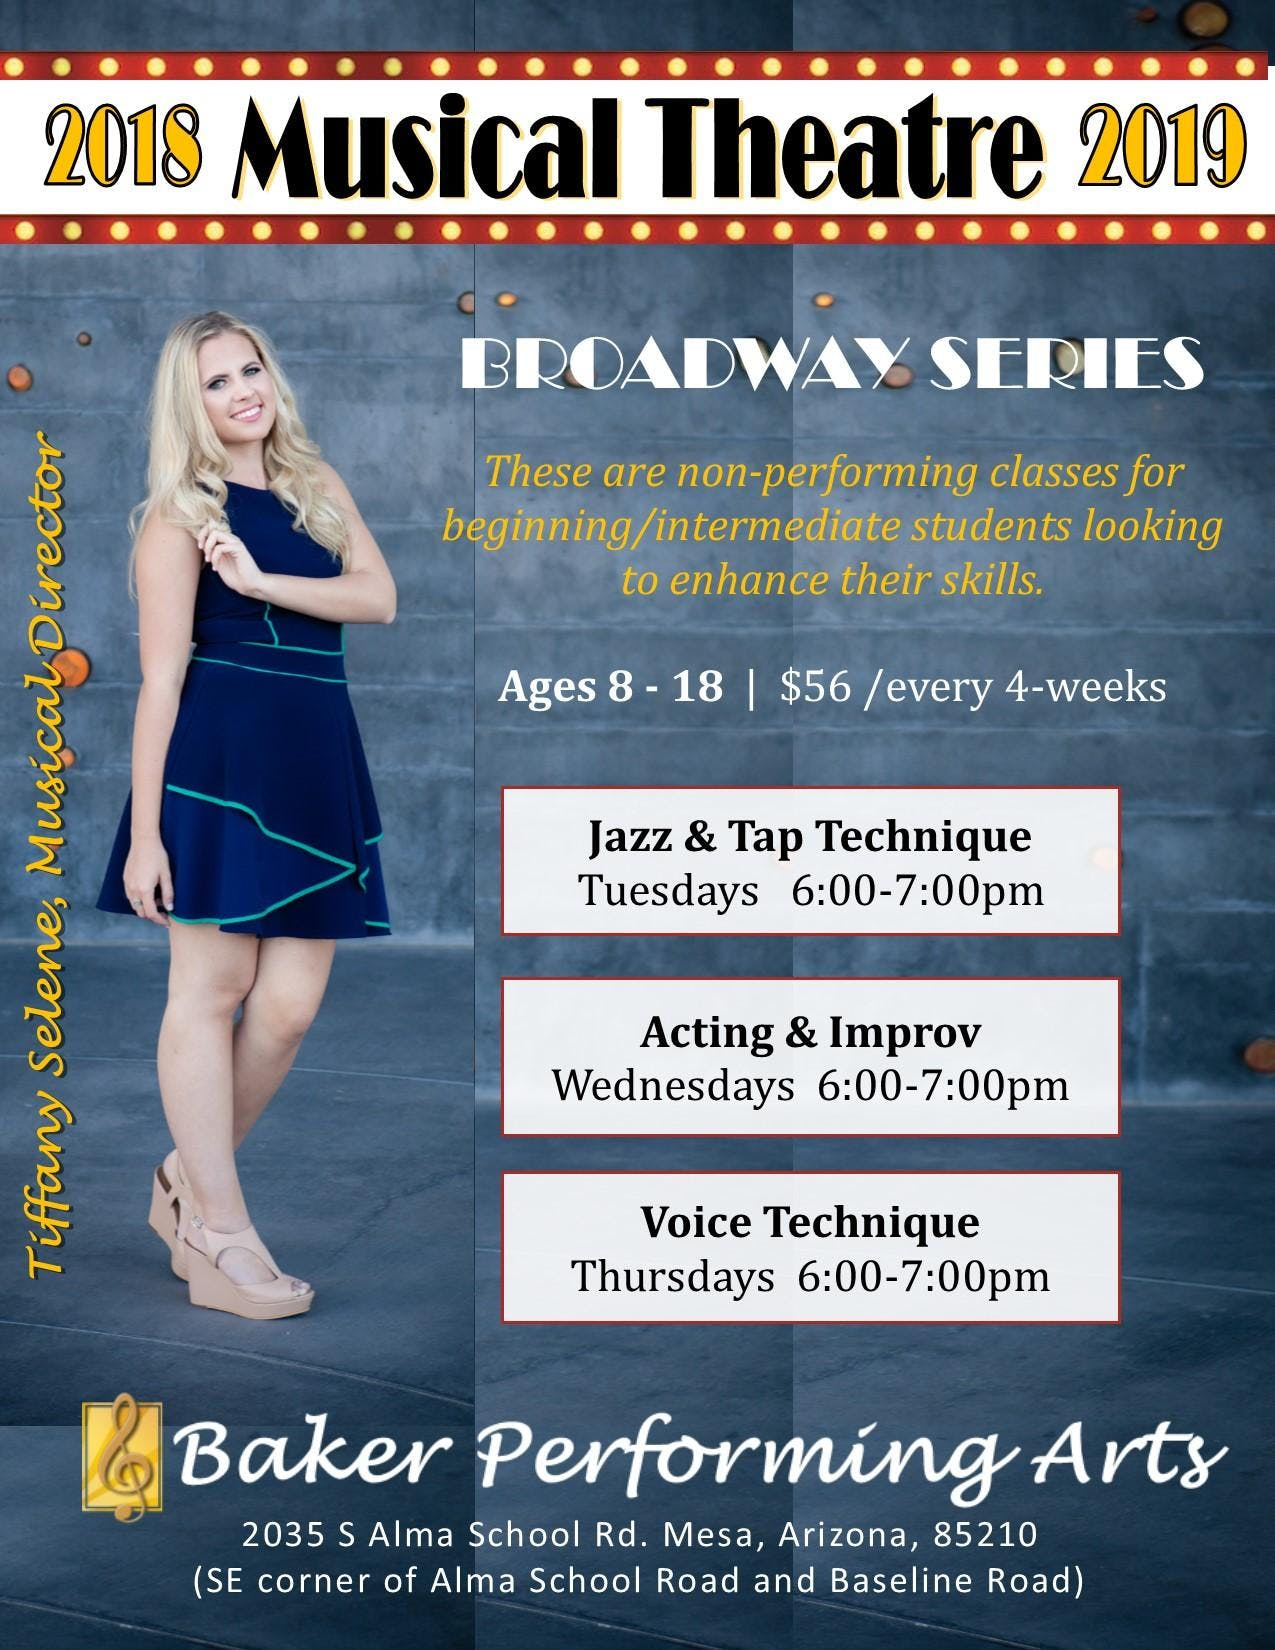 Musical Theatre Broadway Series Monthly Tuition